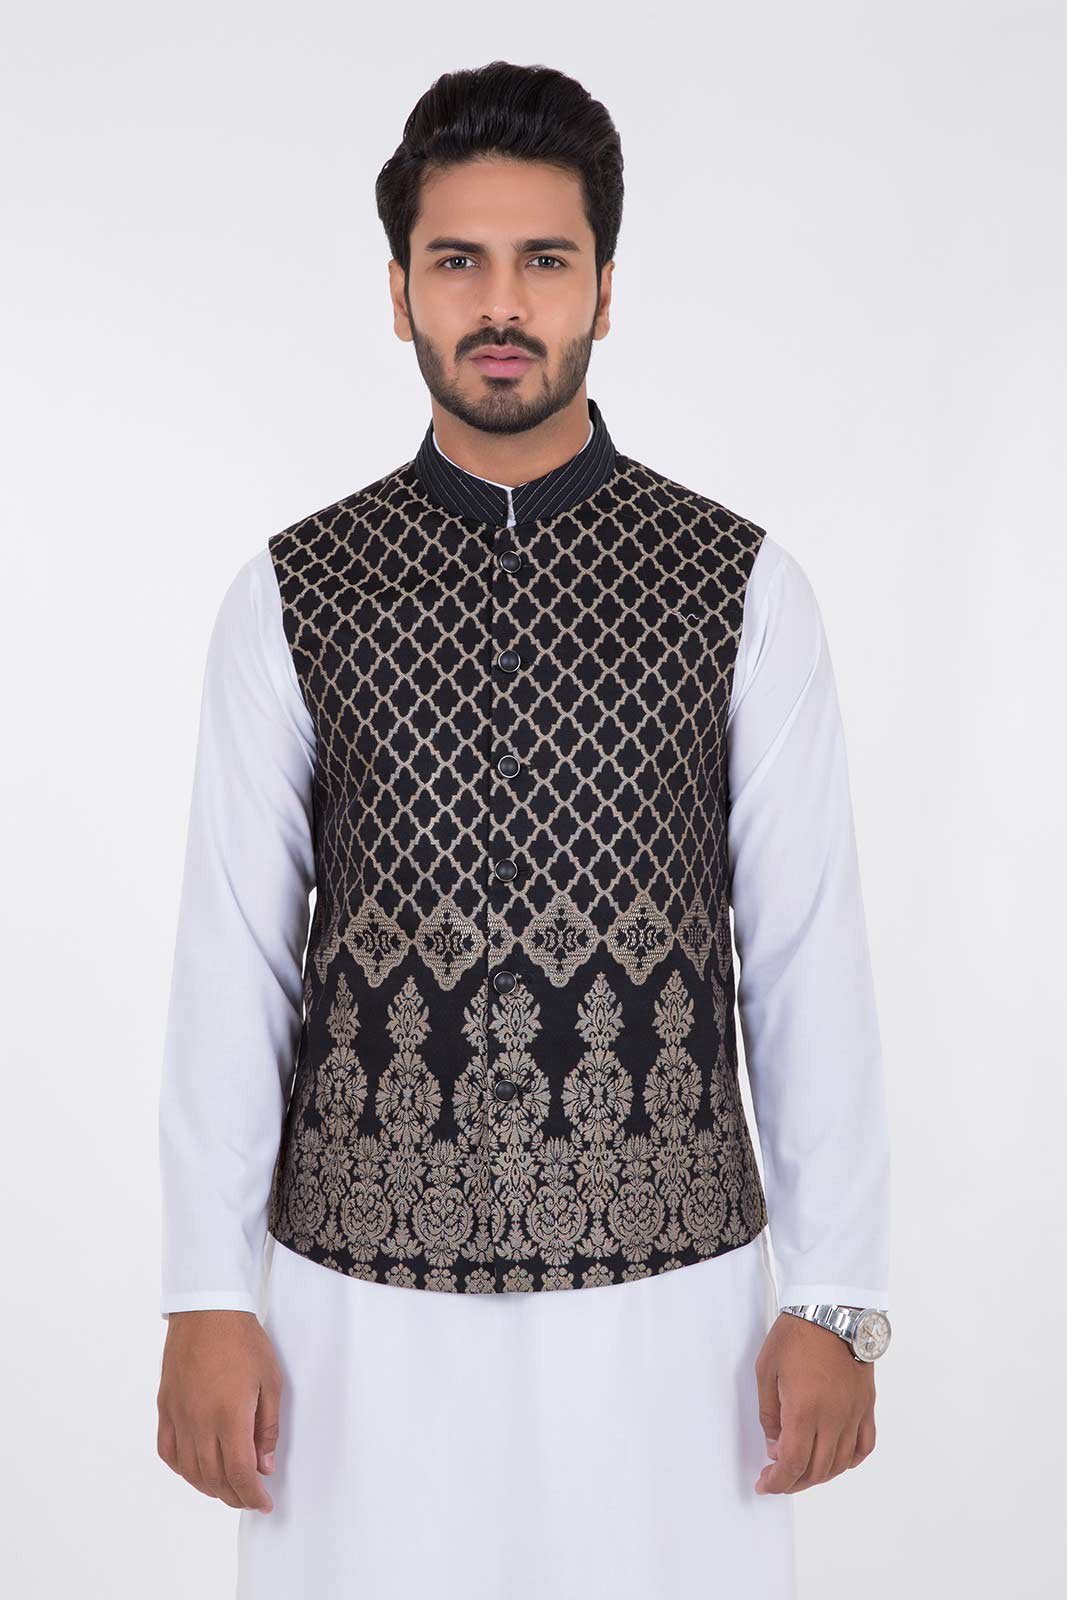 Stylish Gents Shalwar Kameez In The USA